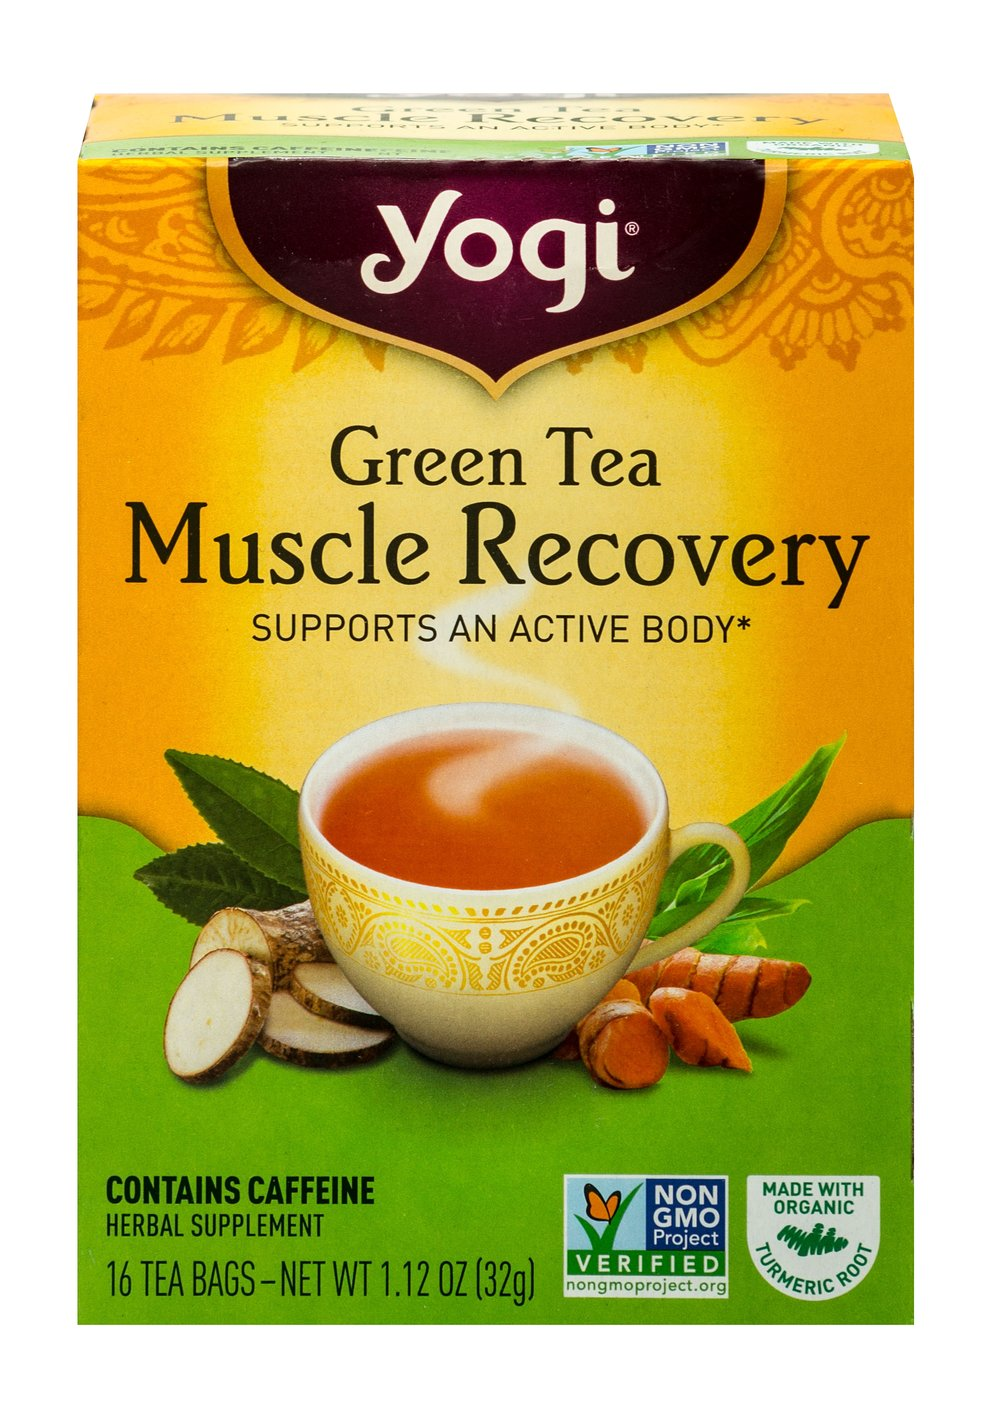 Green Tea Muscle Recovery <p><strong>From the Manufacturer's Label:</strong></p><p>Stay active with a cup of Green Tea Muscle Recovery.  Our satisfying blend starts with gently stimulating and antioxidant-rich Green Tea and combines it with traditional soothing herbs such as Organic Turmeric Root. So get invigorated, be energized, and stay active with Green Tea Muscle Recovery!</p> 16 Tea Bags  $6.74